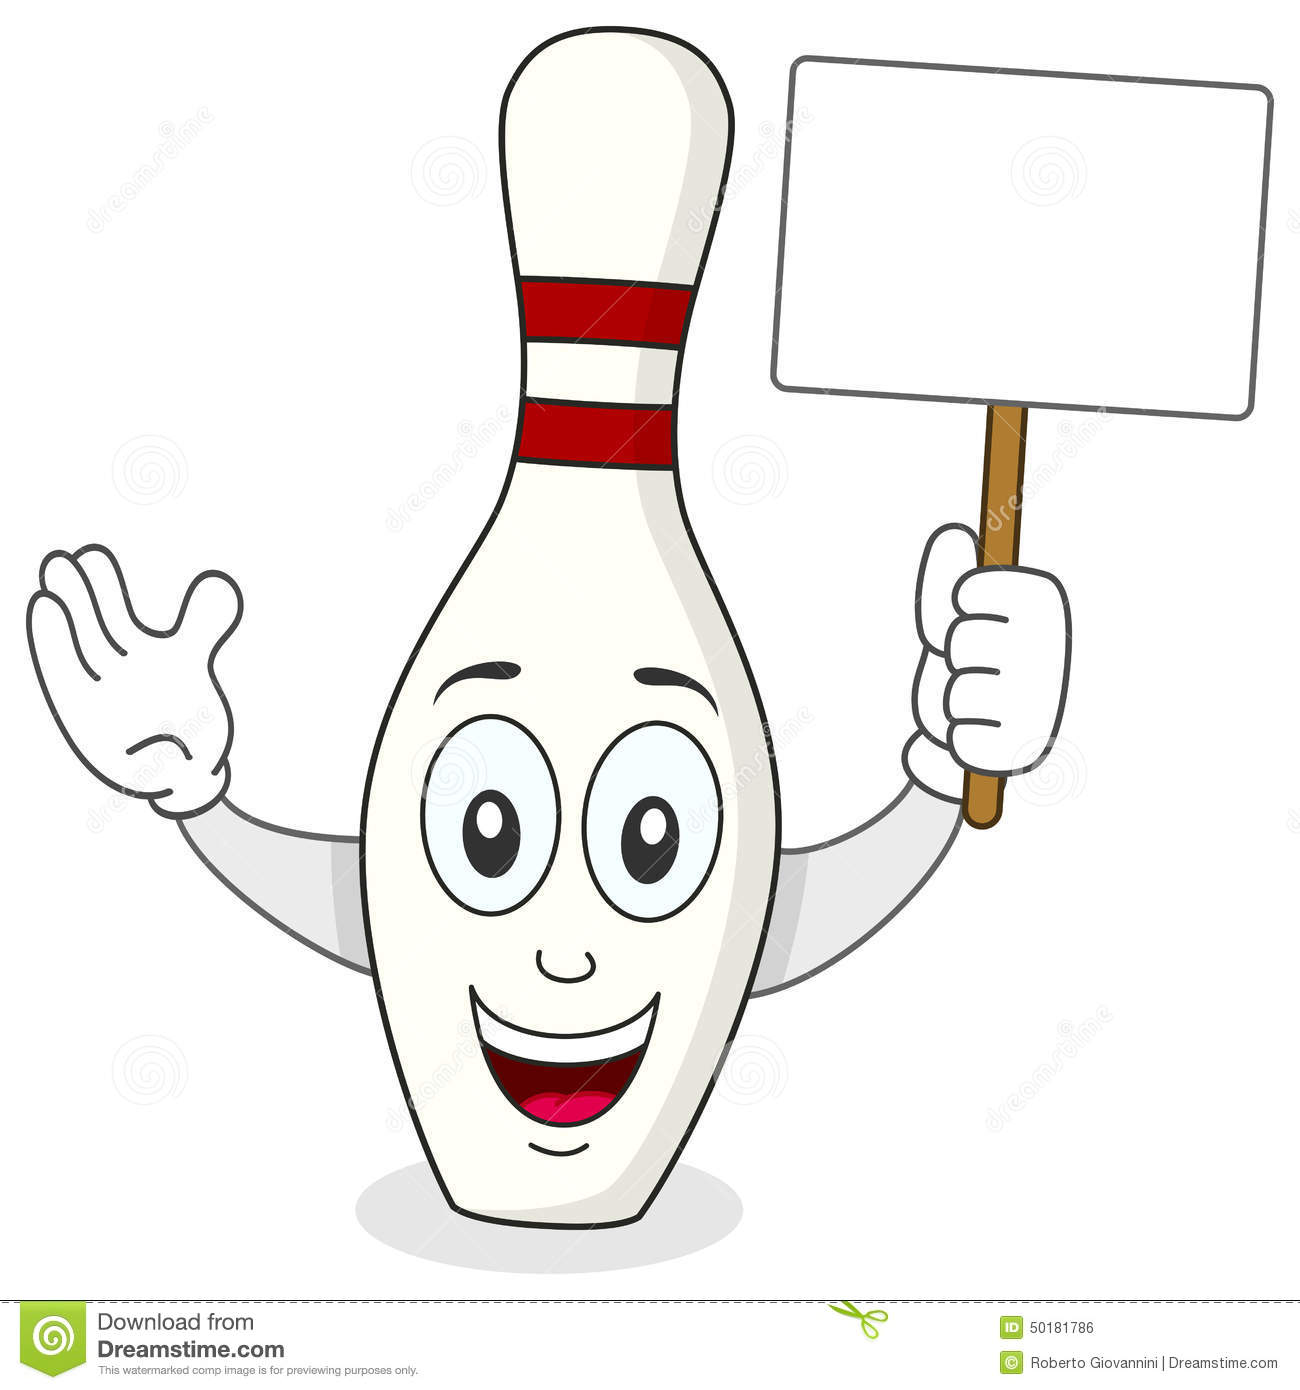 Skittle Or Bowling Pin Cartoon Character Stock Vector - Image ...